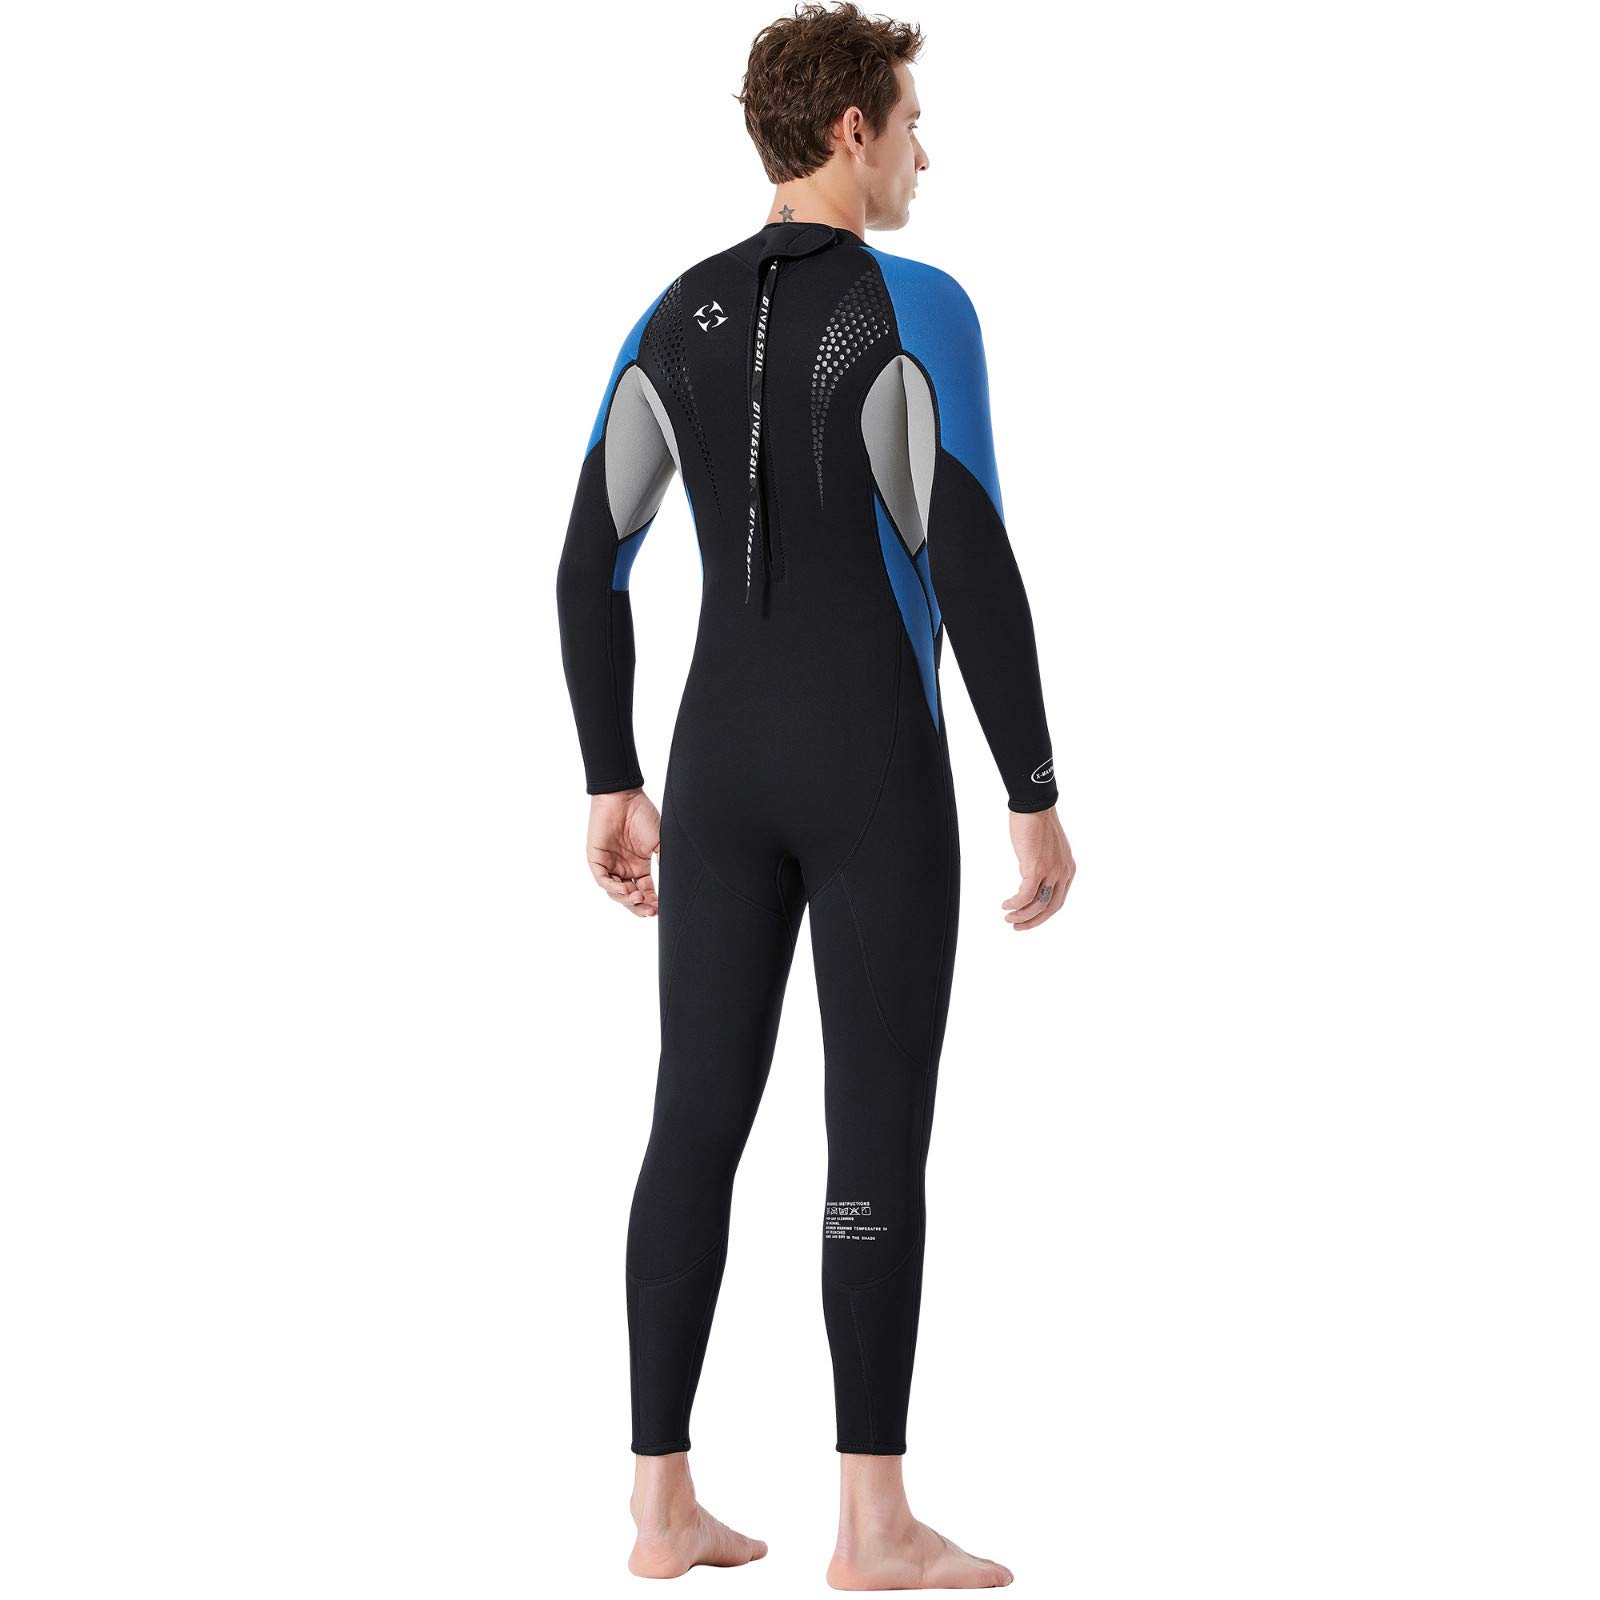 Yliquor Men's Keep Warm Sunscreen Swimming,Surfing and Snorkeling Diving Coverall SuitTraining Fashion Quick Dry Comfy Breathable Elastic Classic by Yliquor (Image #8)